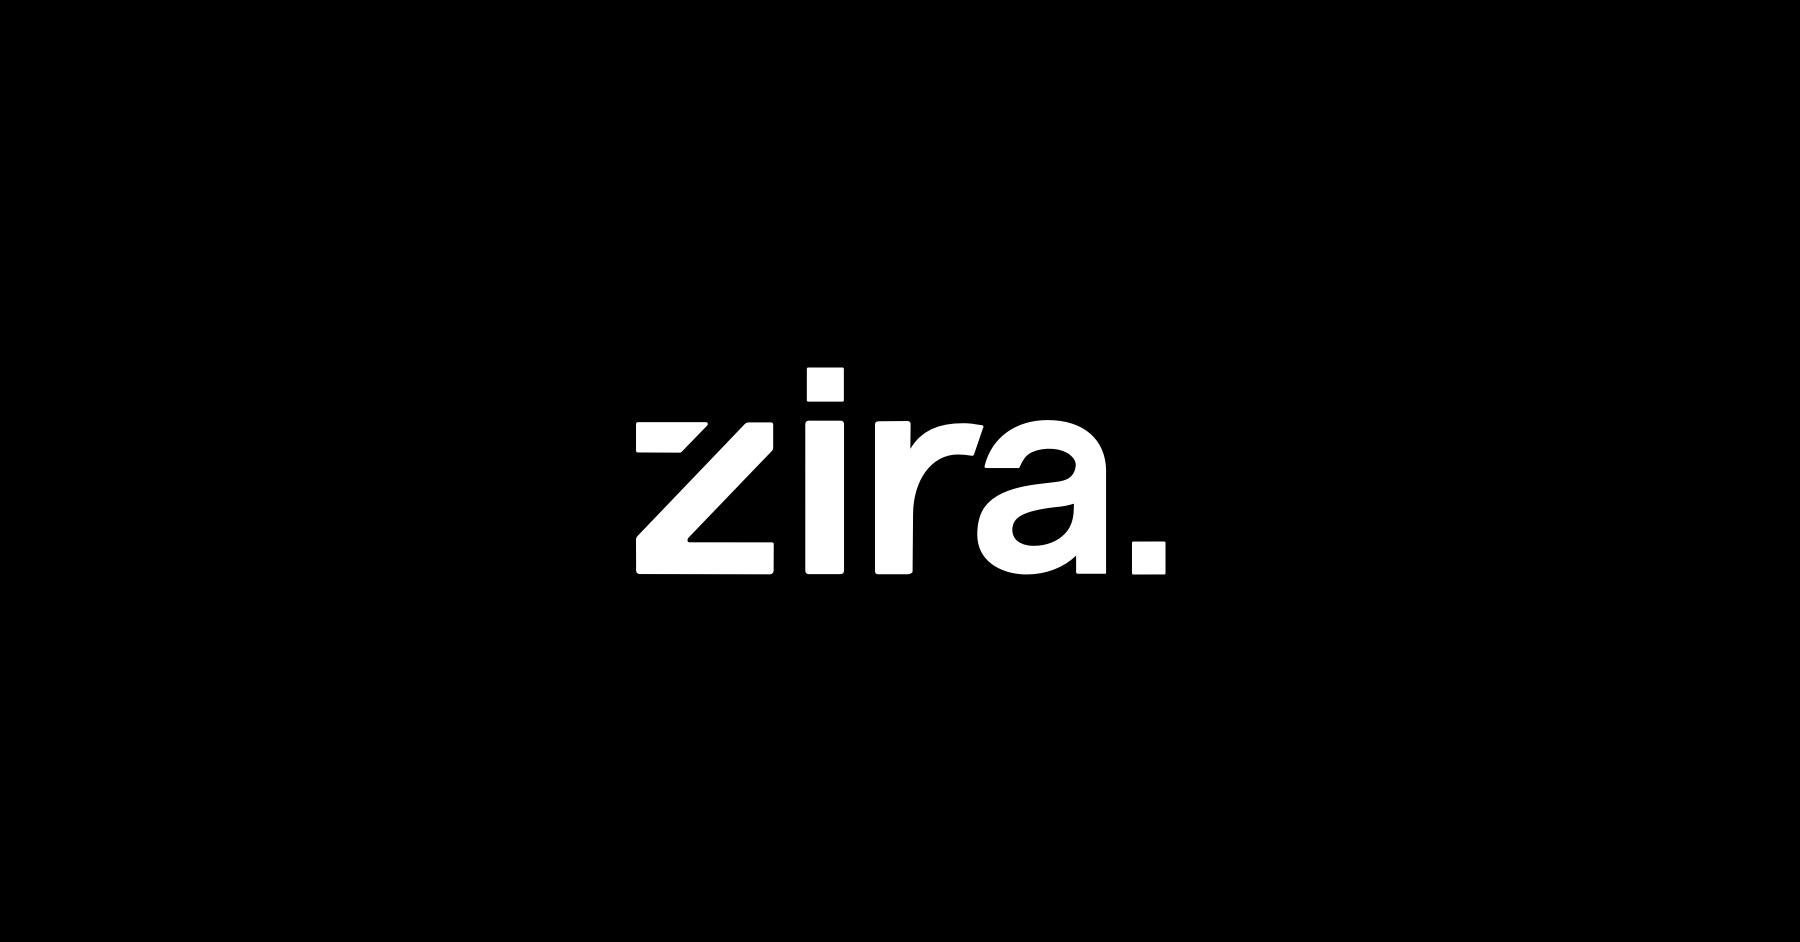 Zira product design UX/UI by hello